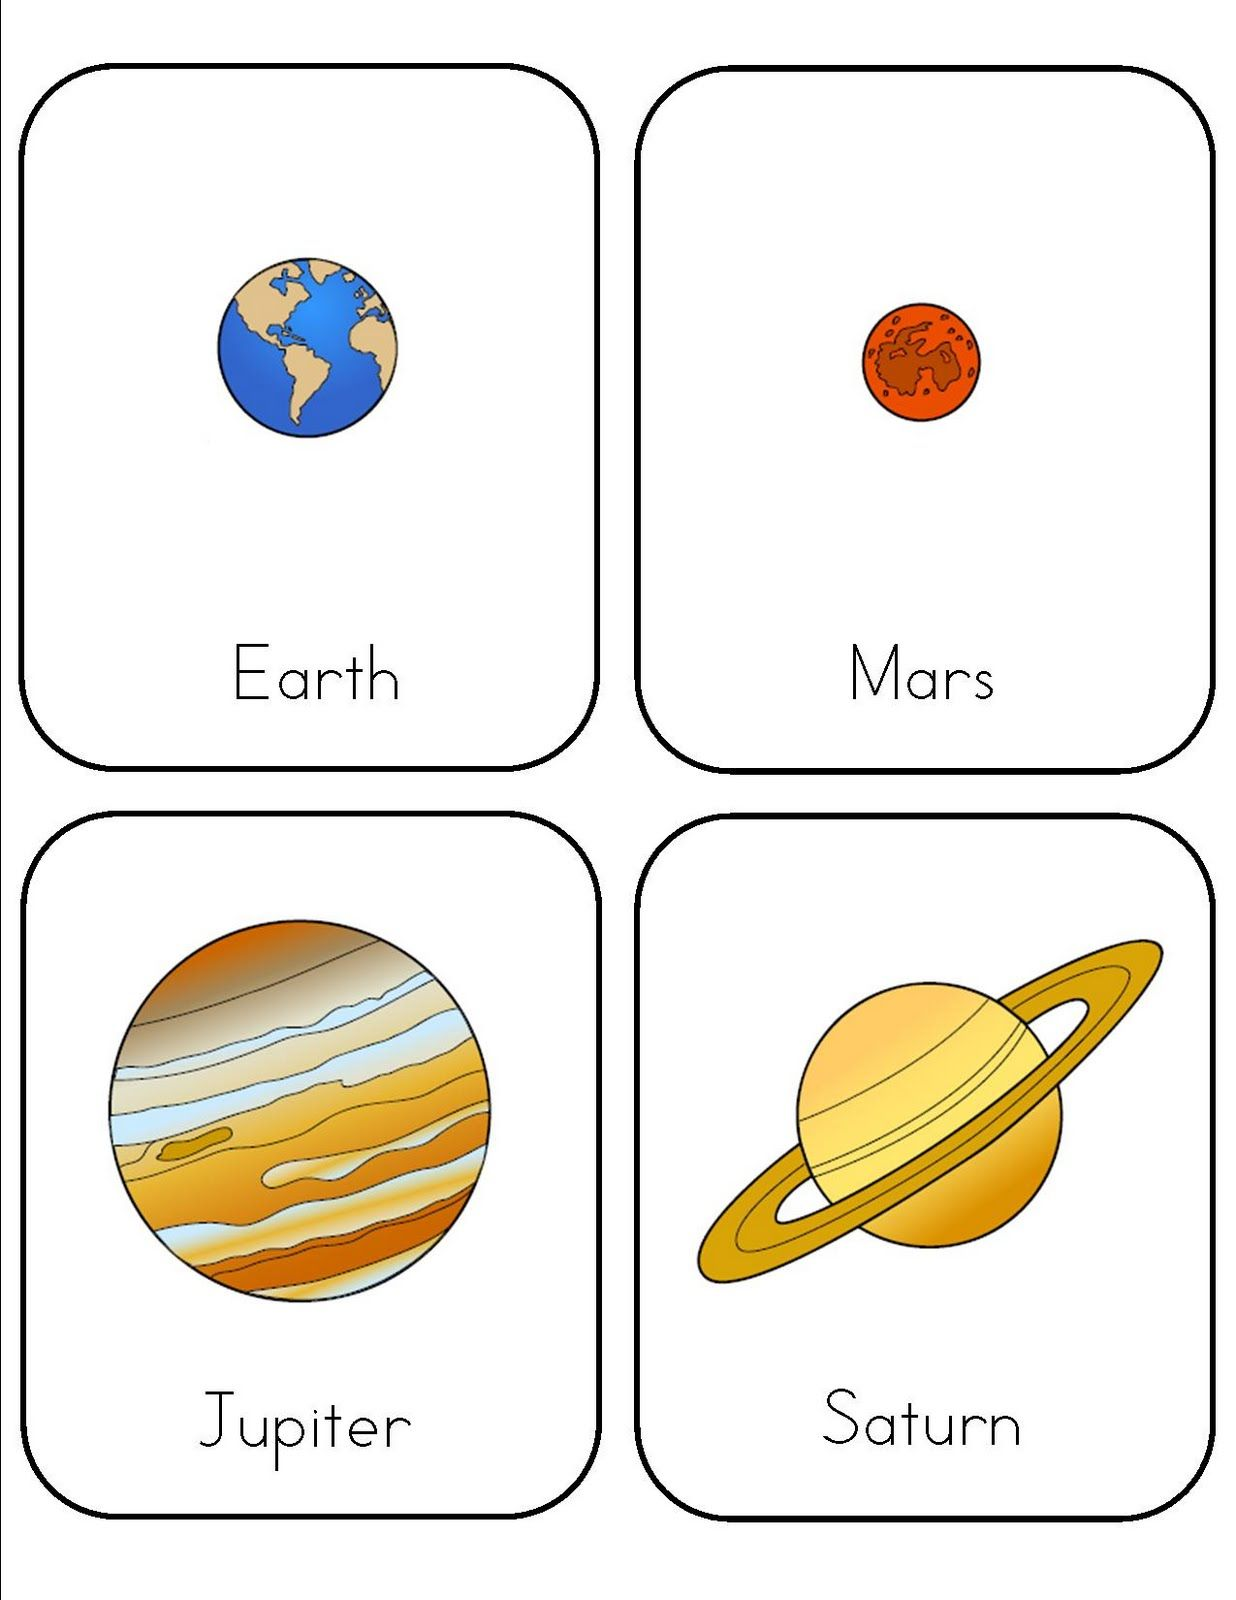 My Sister Made Me A Preschool Lesson About Space That We Are Going To Use Next Week Here Are A Few Activities Space Preschool Space Lessons Preschool Lessons [ 1600 x 1236 Pixel ]